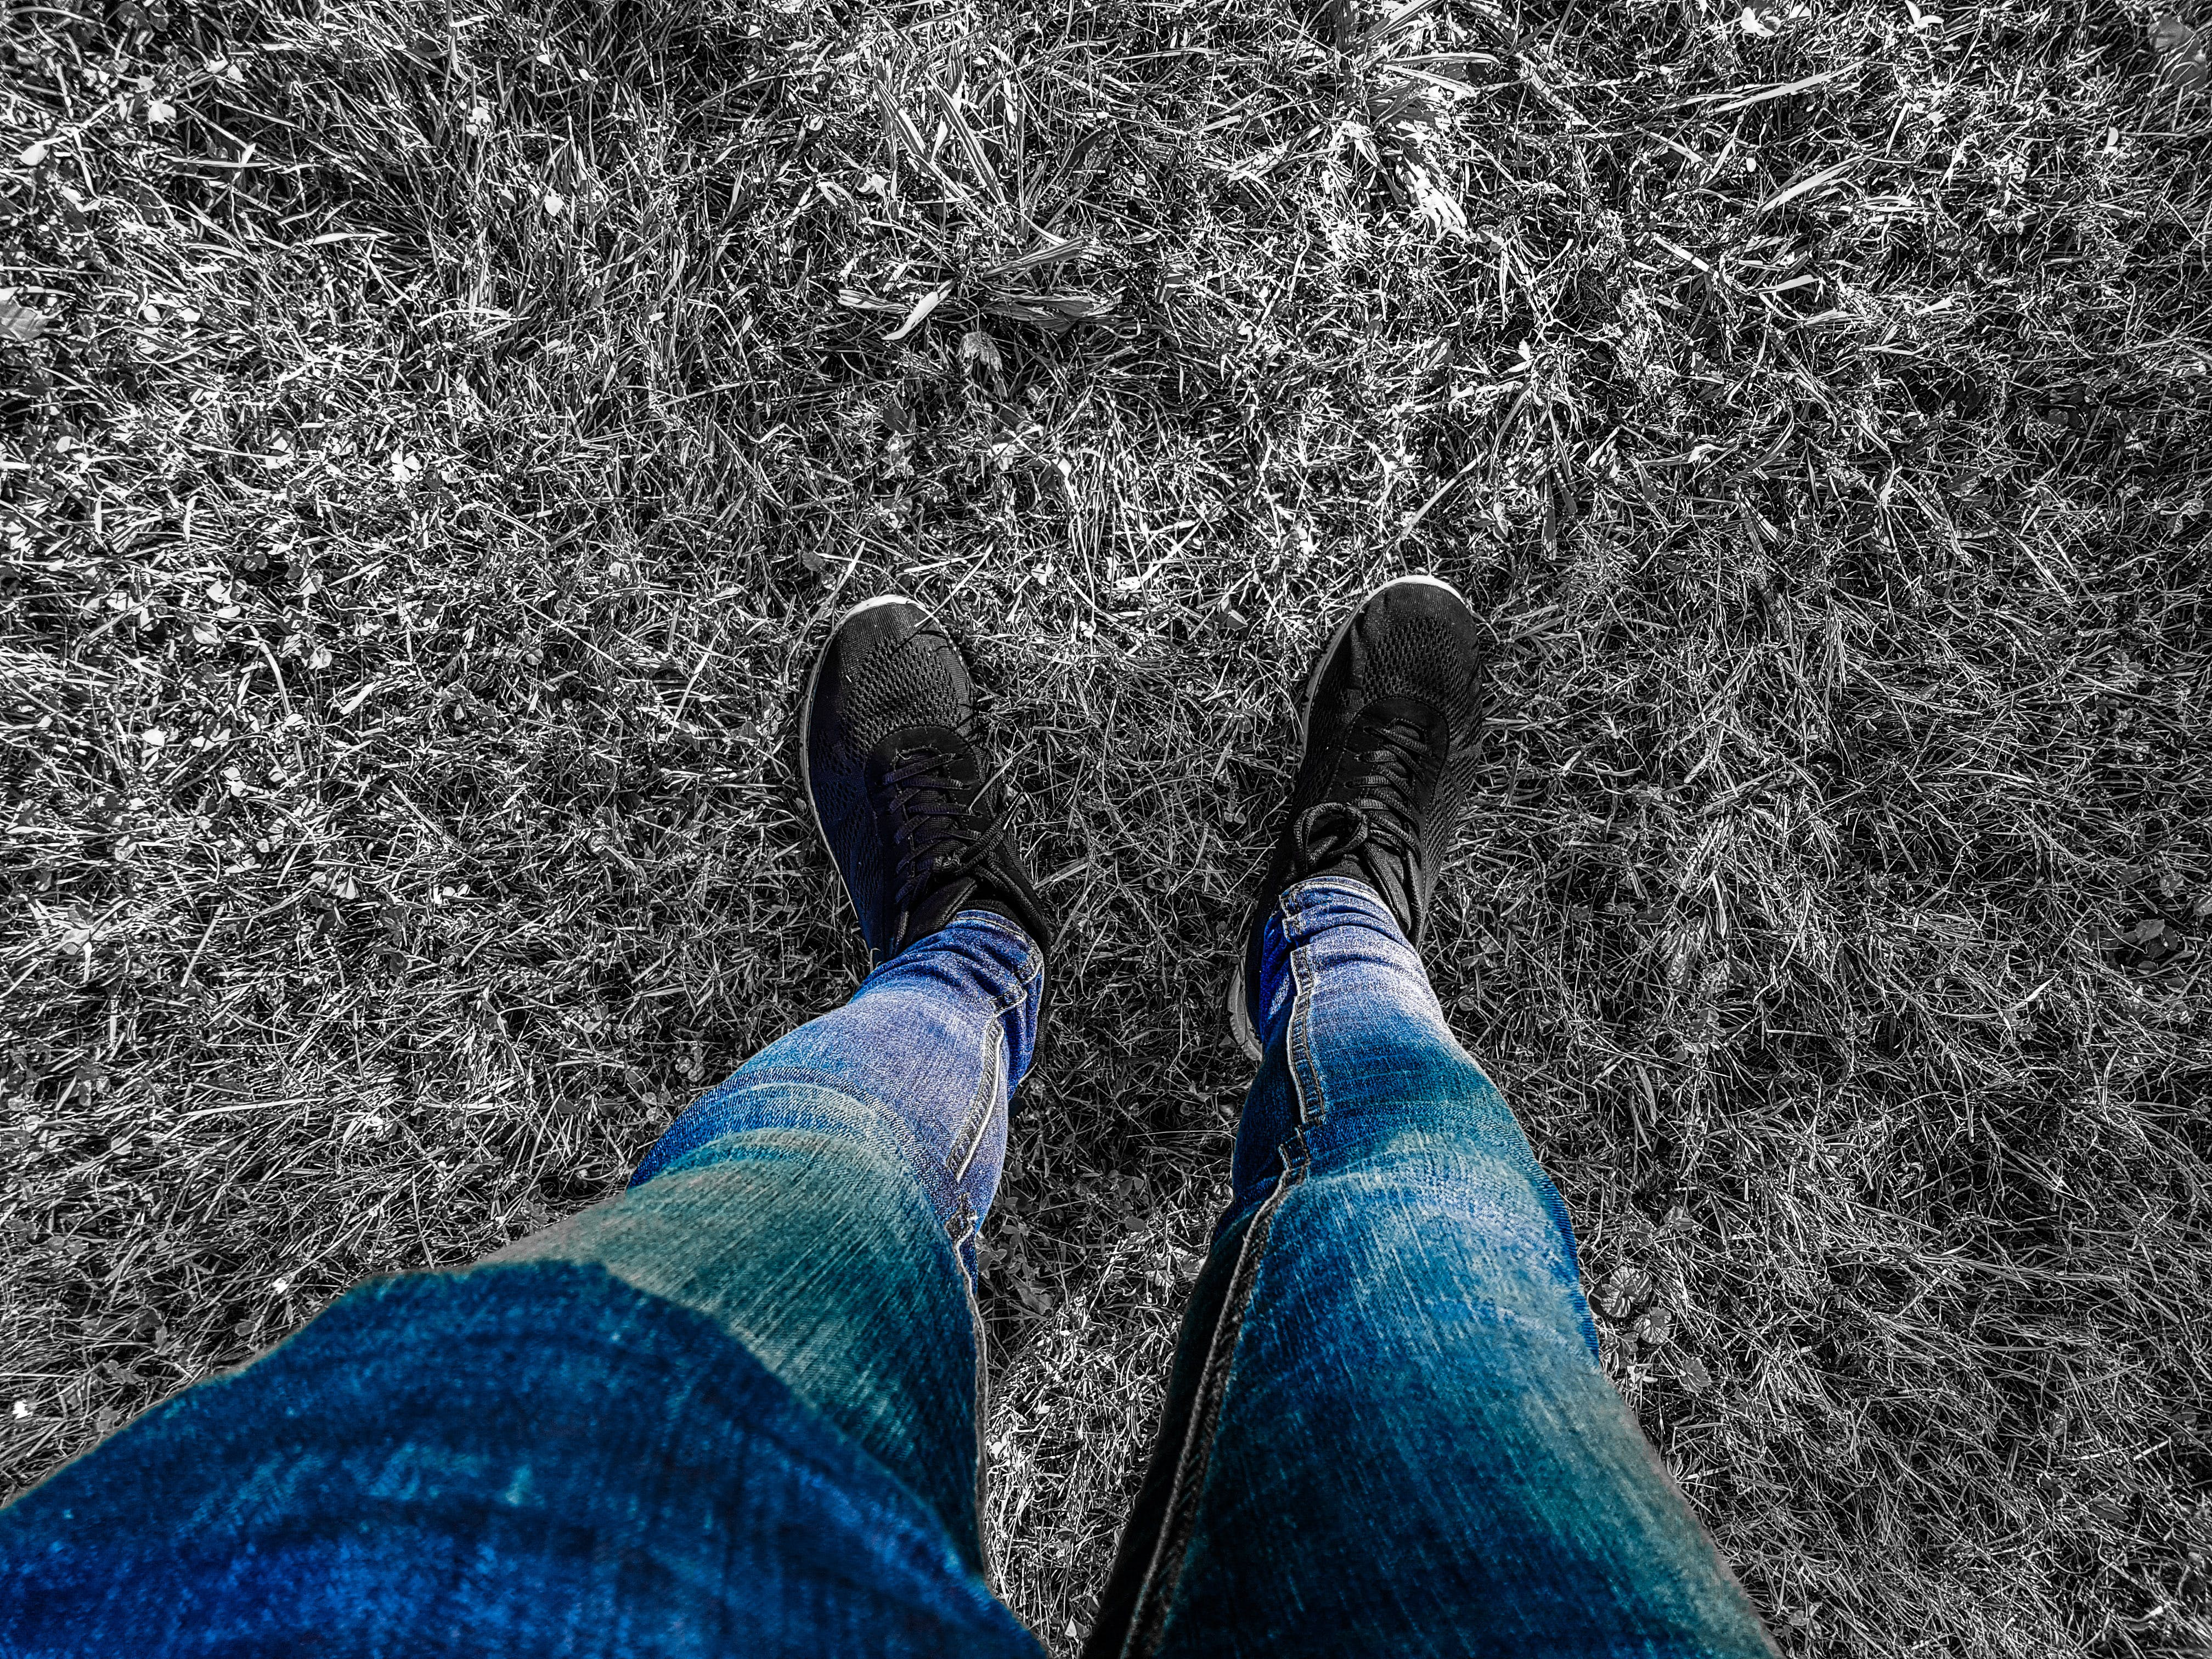 Free stock photo of blue jeans, color, denim jeans, edited